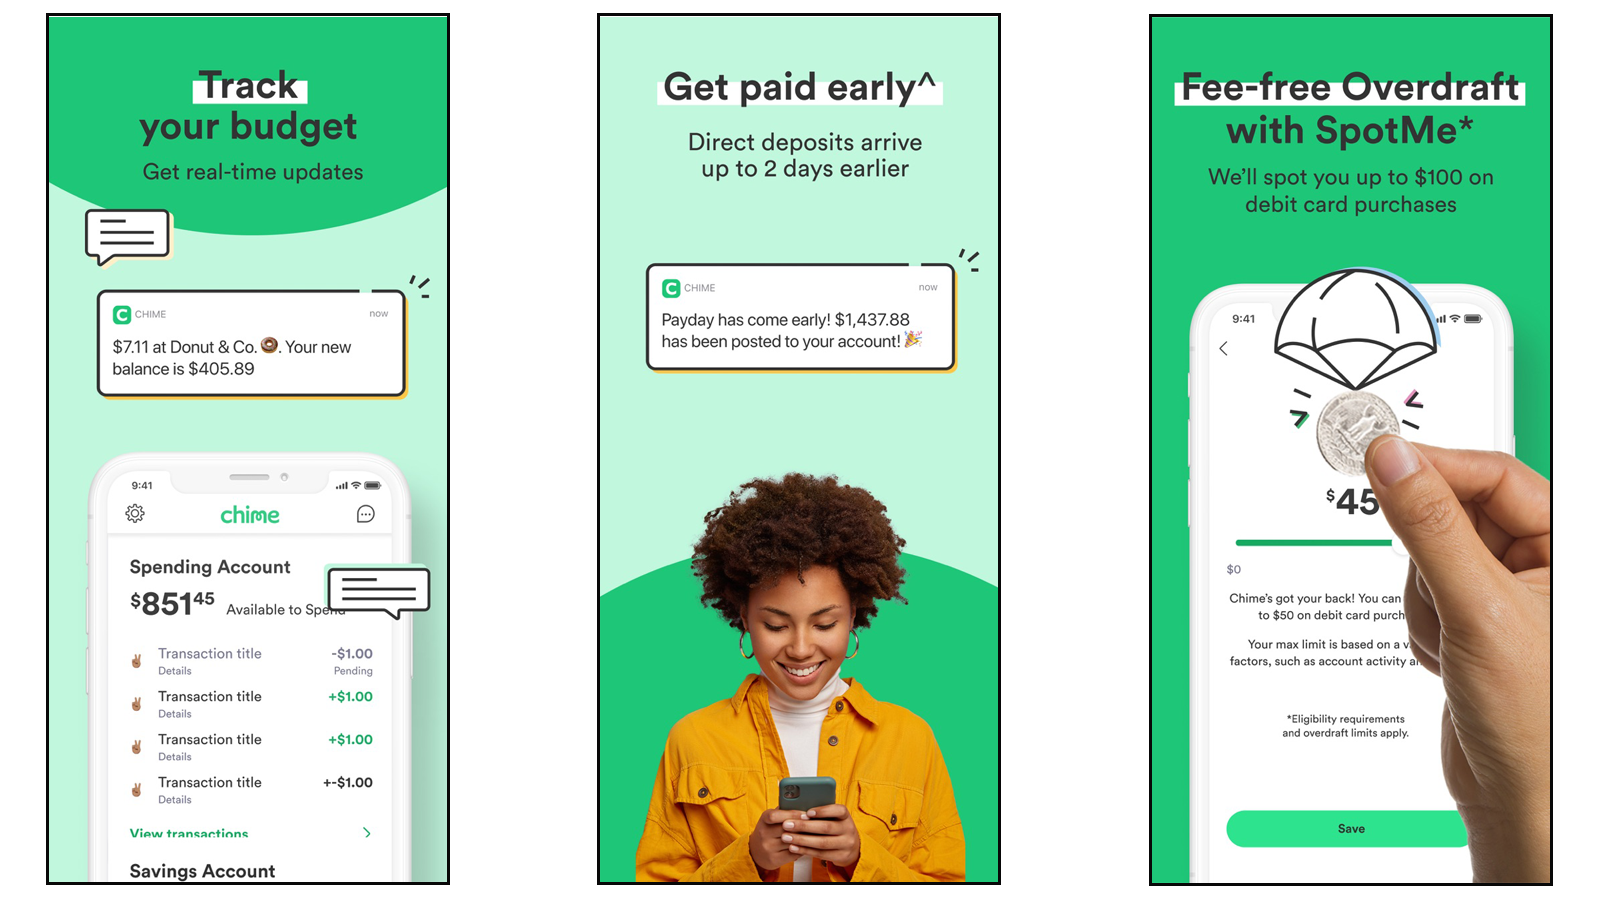 Chime app with early direct deposit and other options